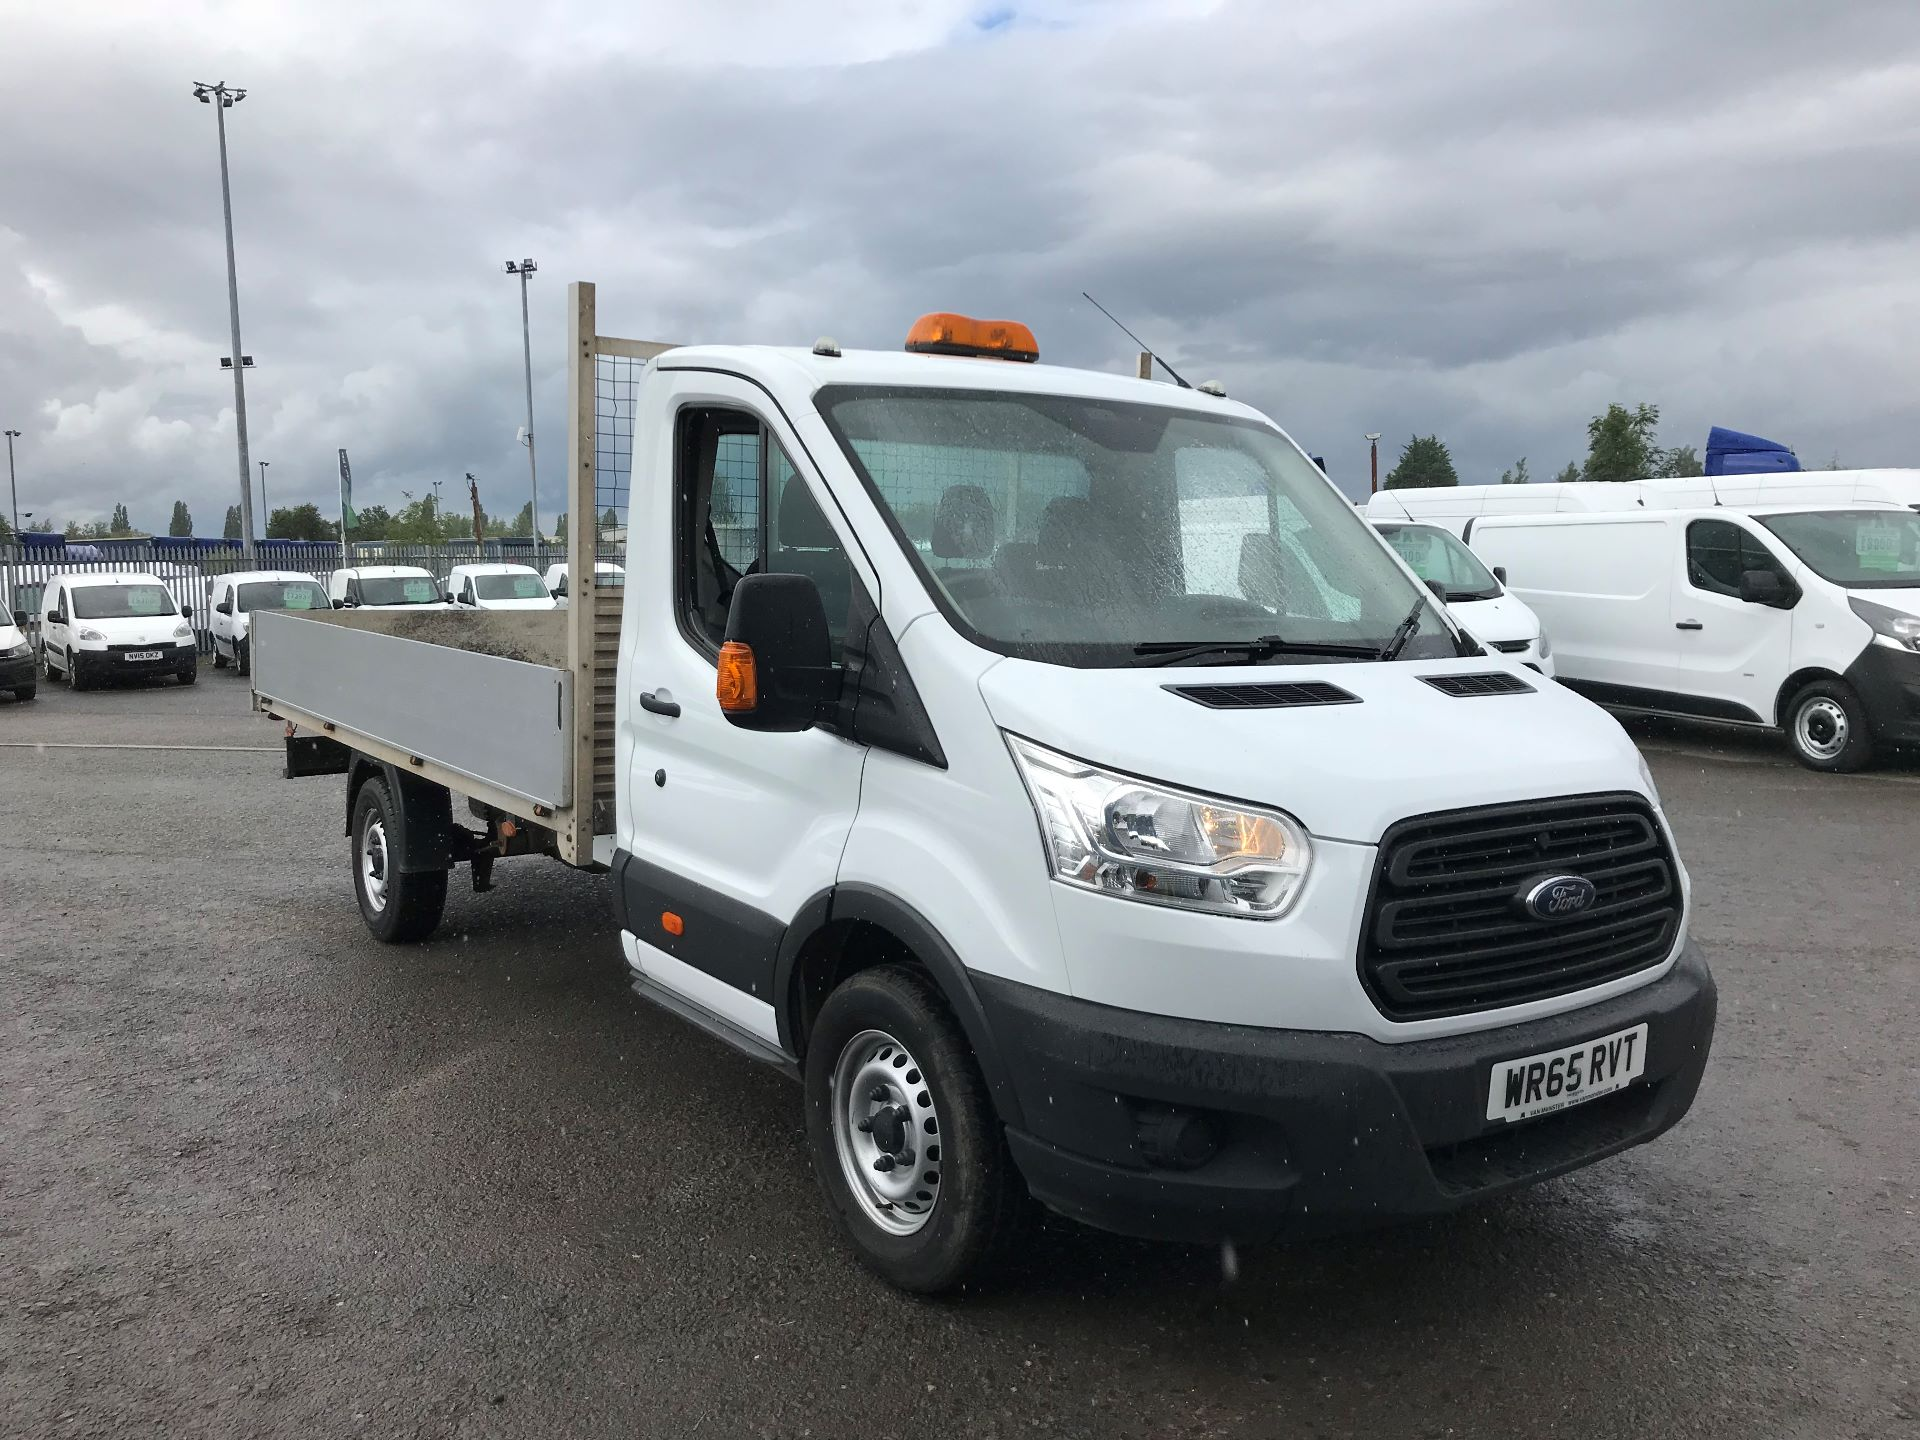 2015 Ford Transit 2.2 Tdci 125Ps Chassis Cab (WR65RVT)